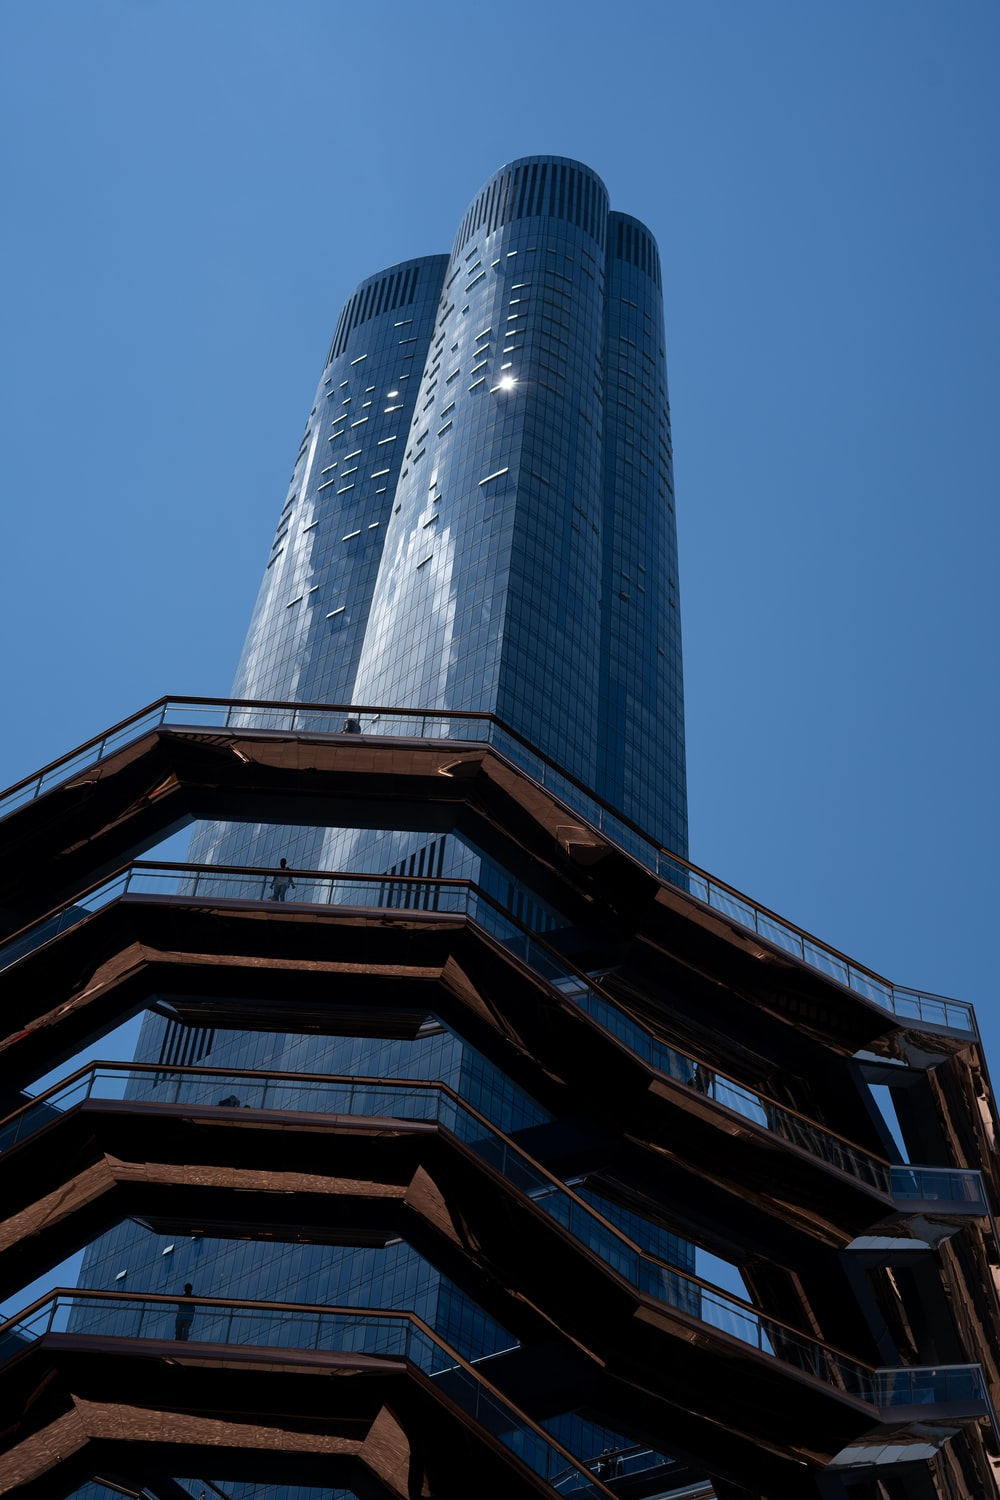 low angle photo of high rise building